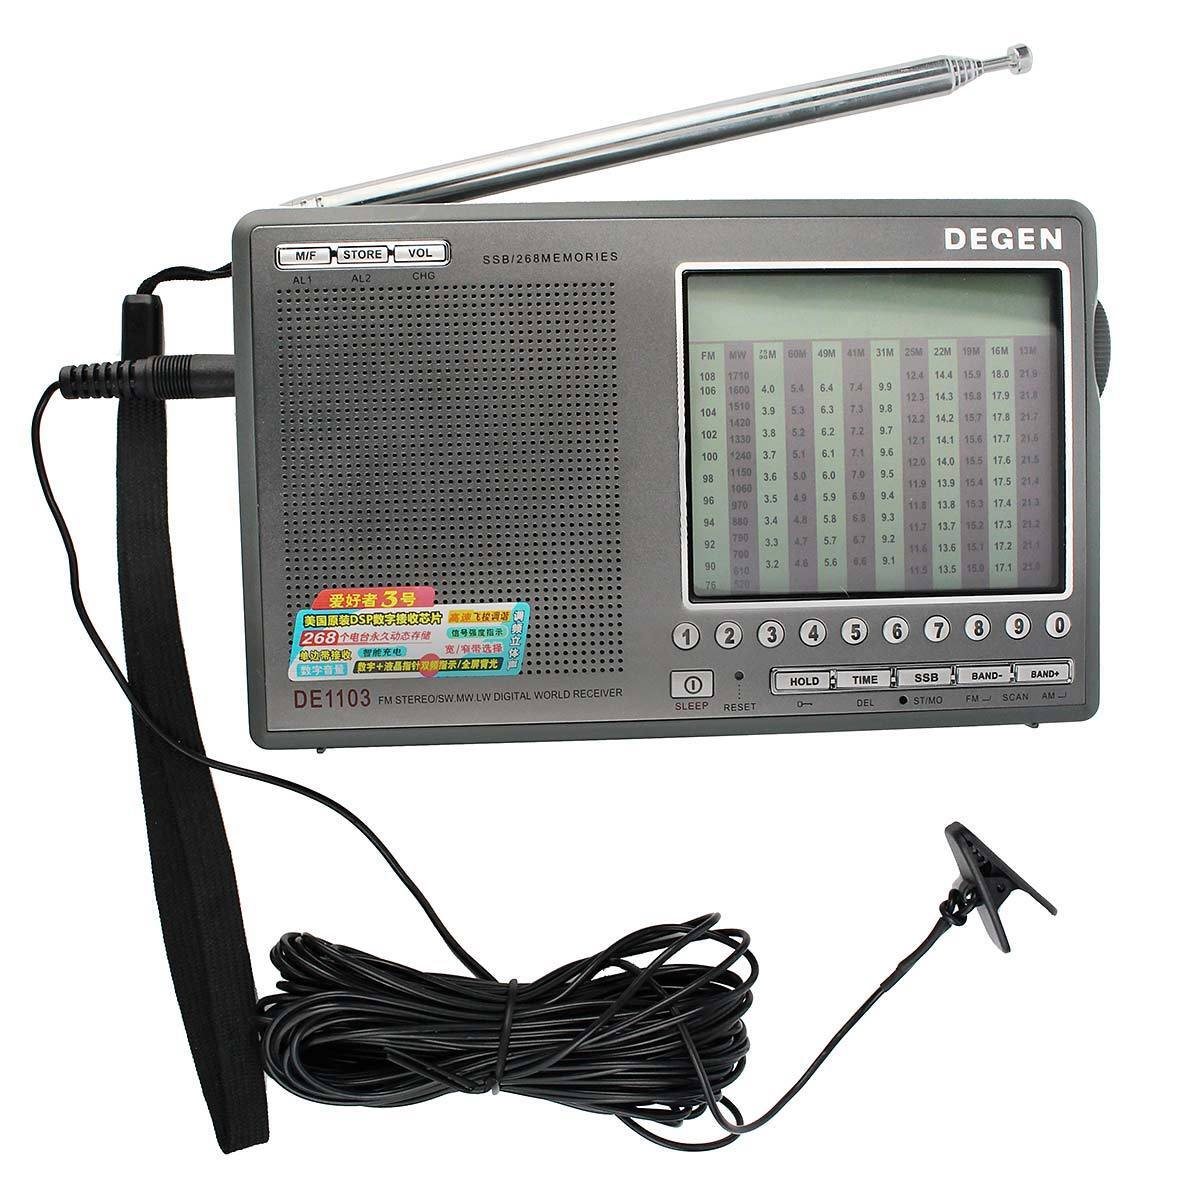 Our Picks For Best Portable Fm Radios 2016 likewise 172309342607 furthermore Product likewise Portable Radios With Best Reception moreover Shortwave Antenna Listening With Portable Receiver Like Tecsun Pl 660. on portable radios with best reception